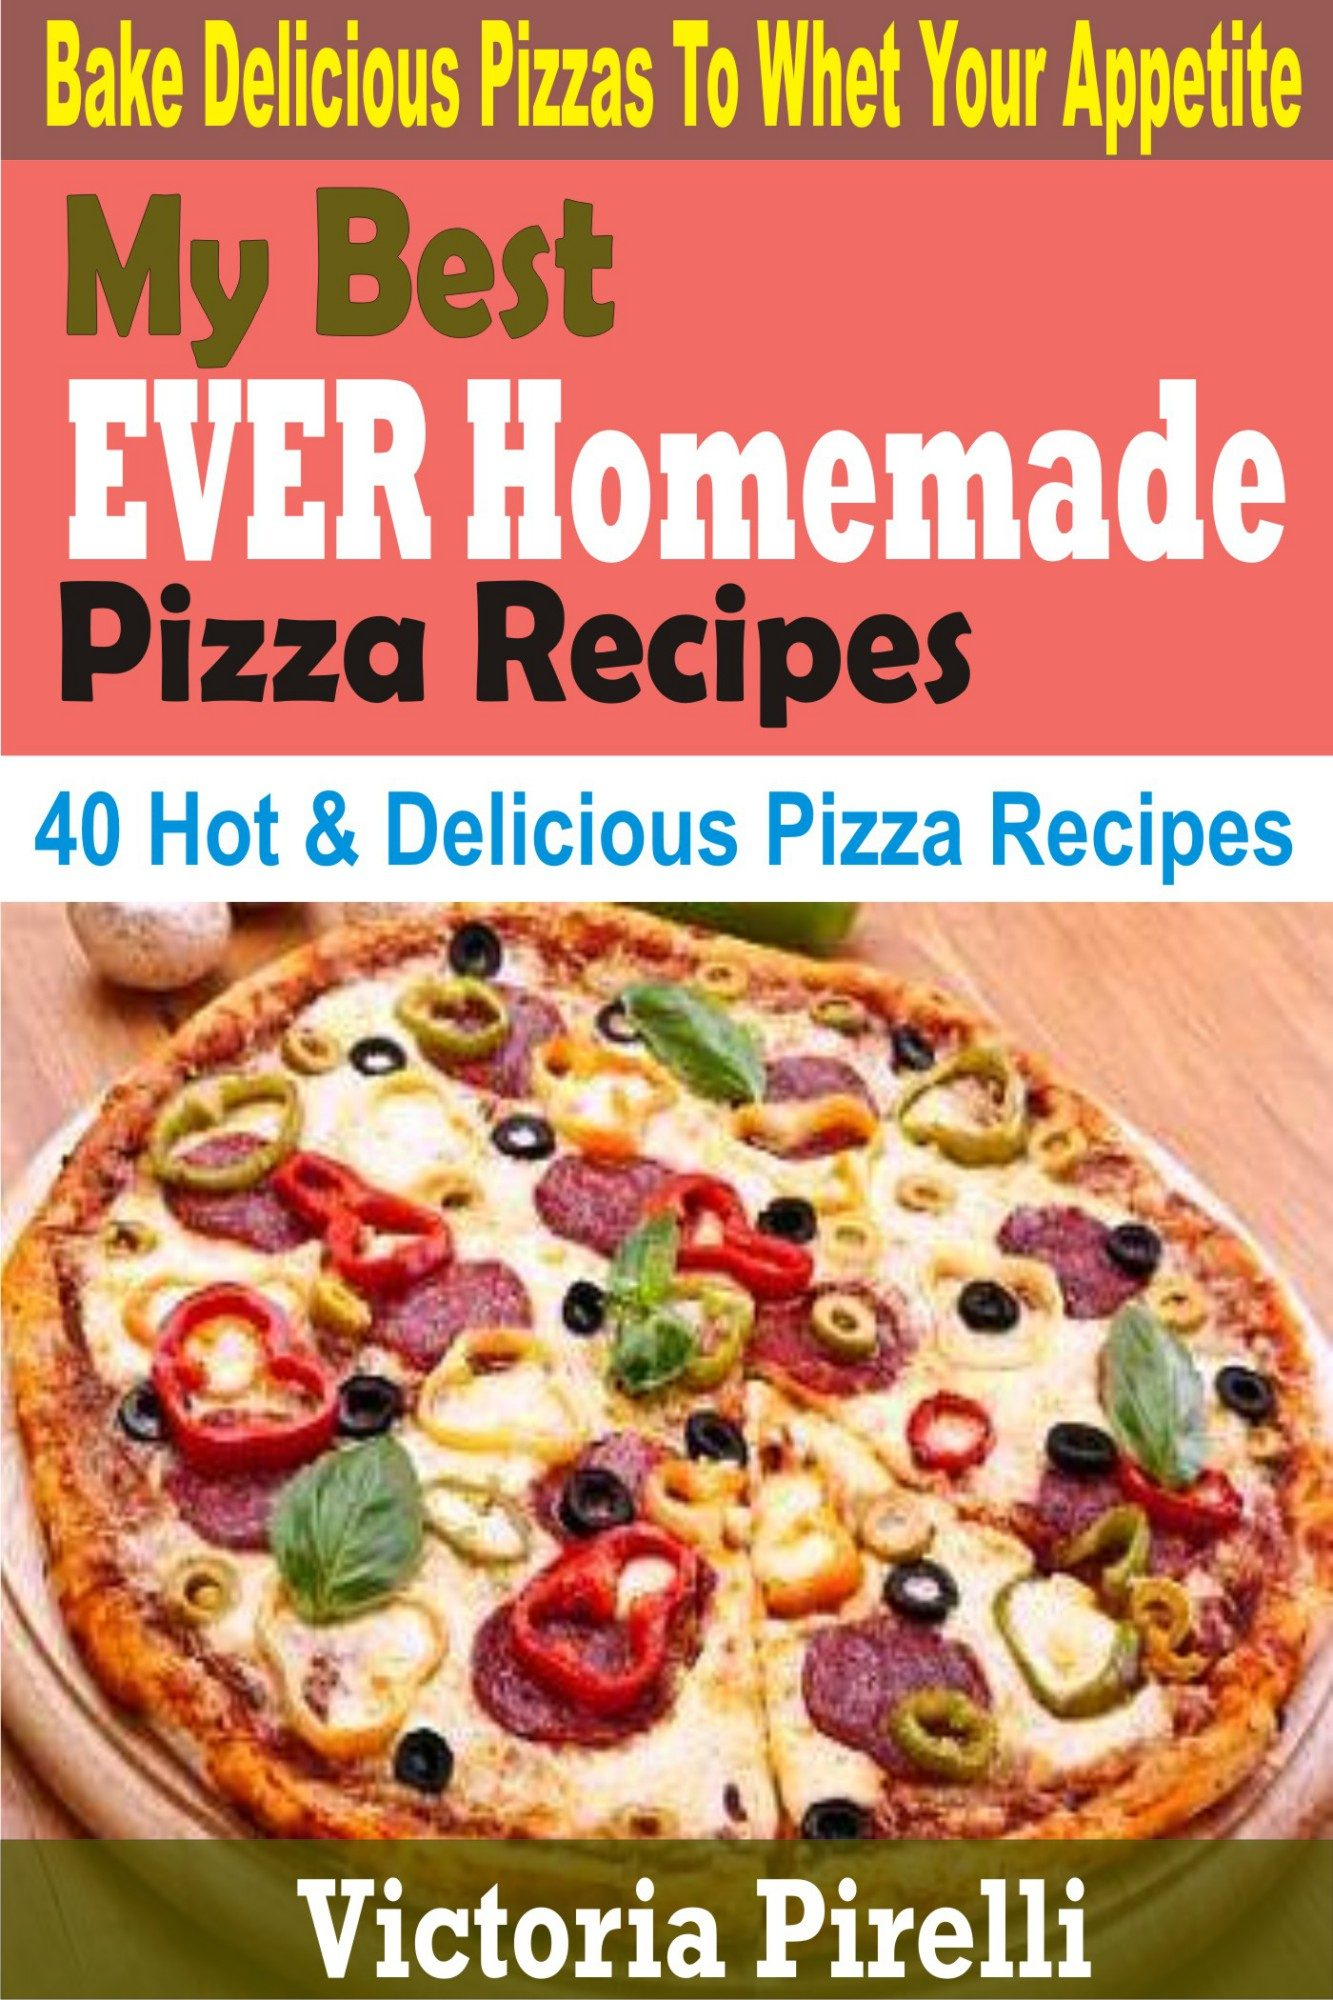 My best ever homemade pizza recipes ebook victoria pirelli my best ever homemade pizza recipes ebook victoria pirelli 6610000002849 forumfinder Image collections